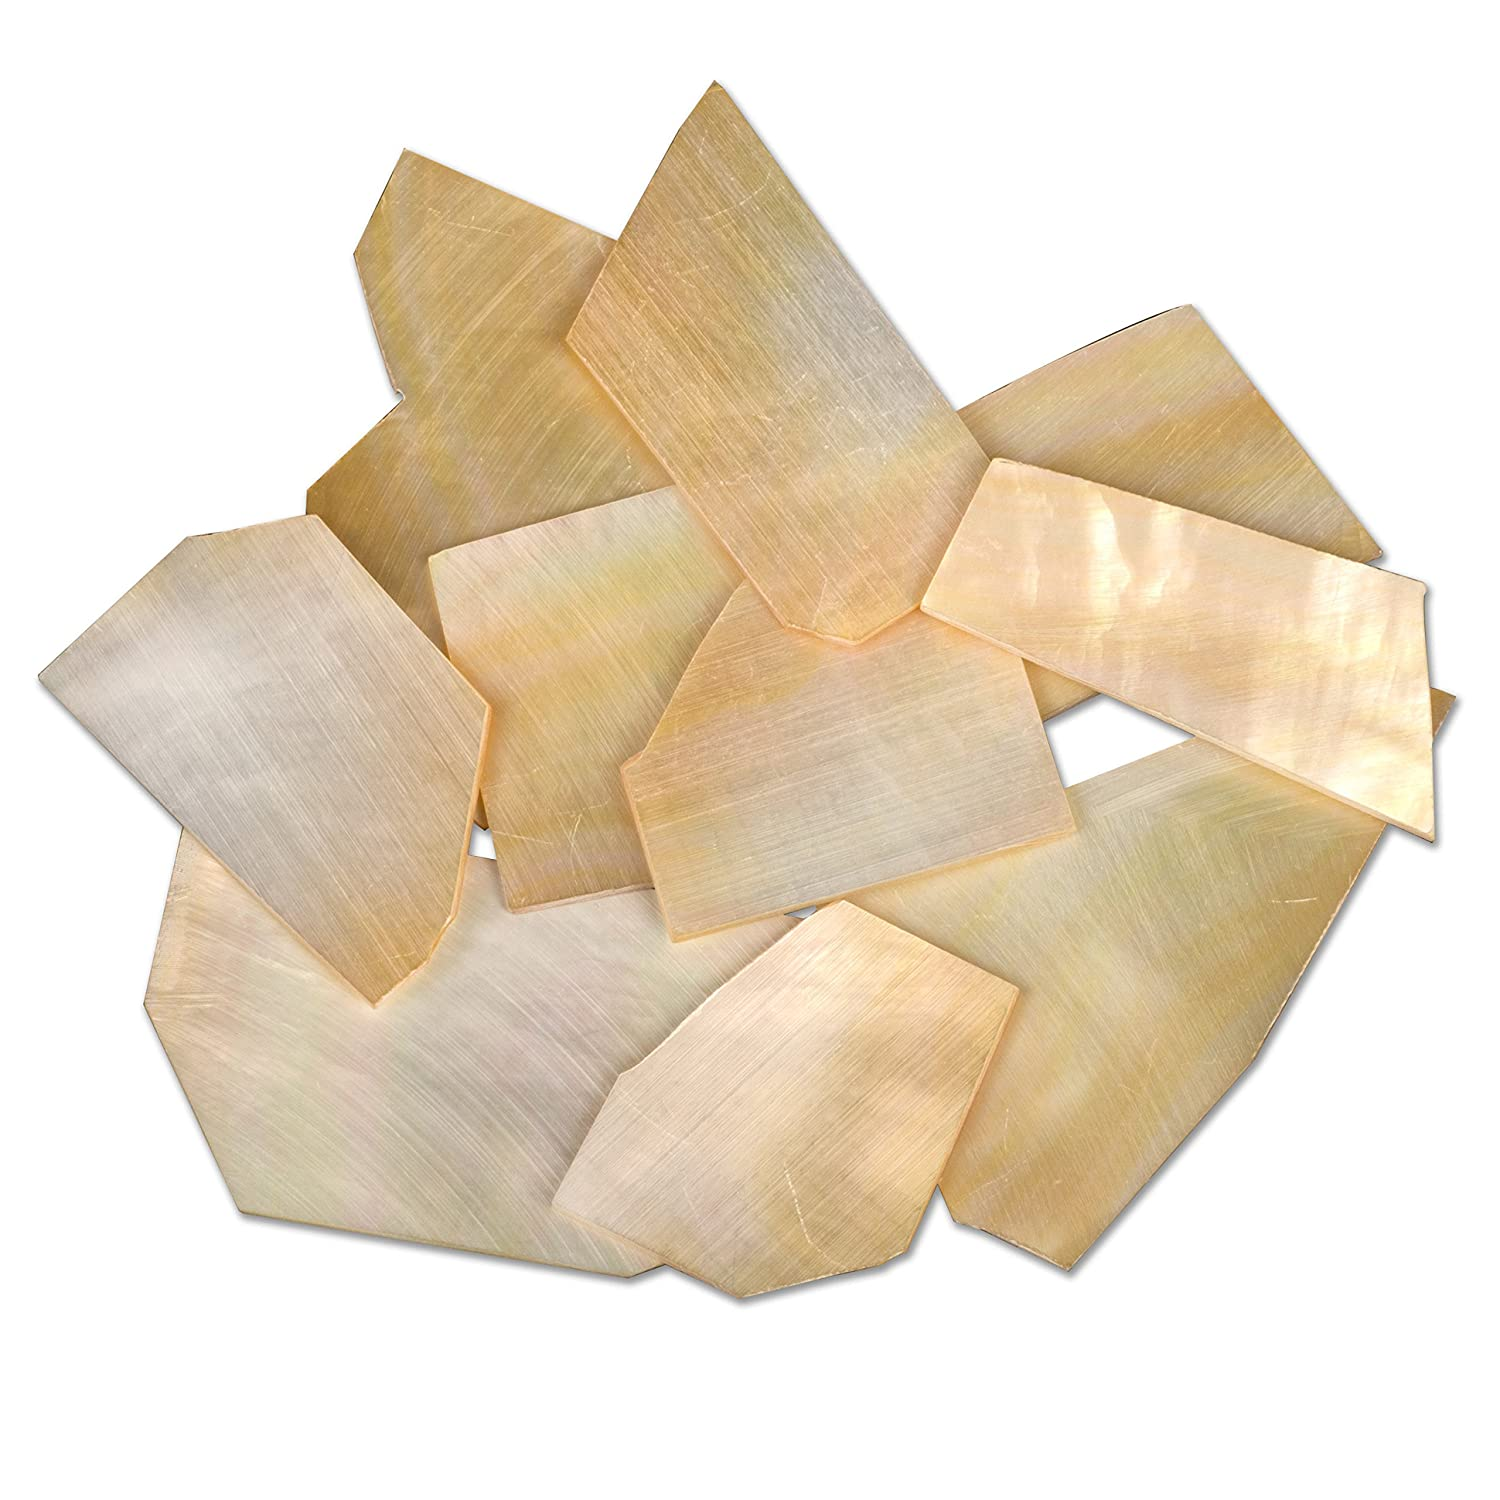 StewMac Pearl Inlay Blanks - 1oz Pack, Gold mother-of-pearl #AN4451